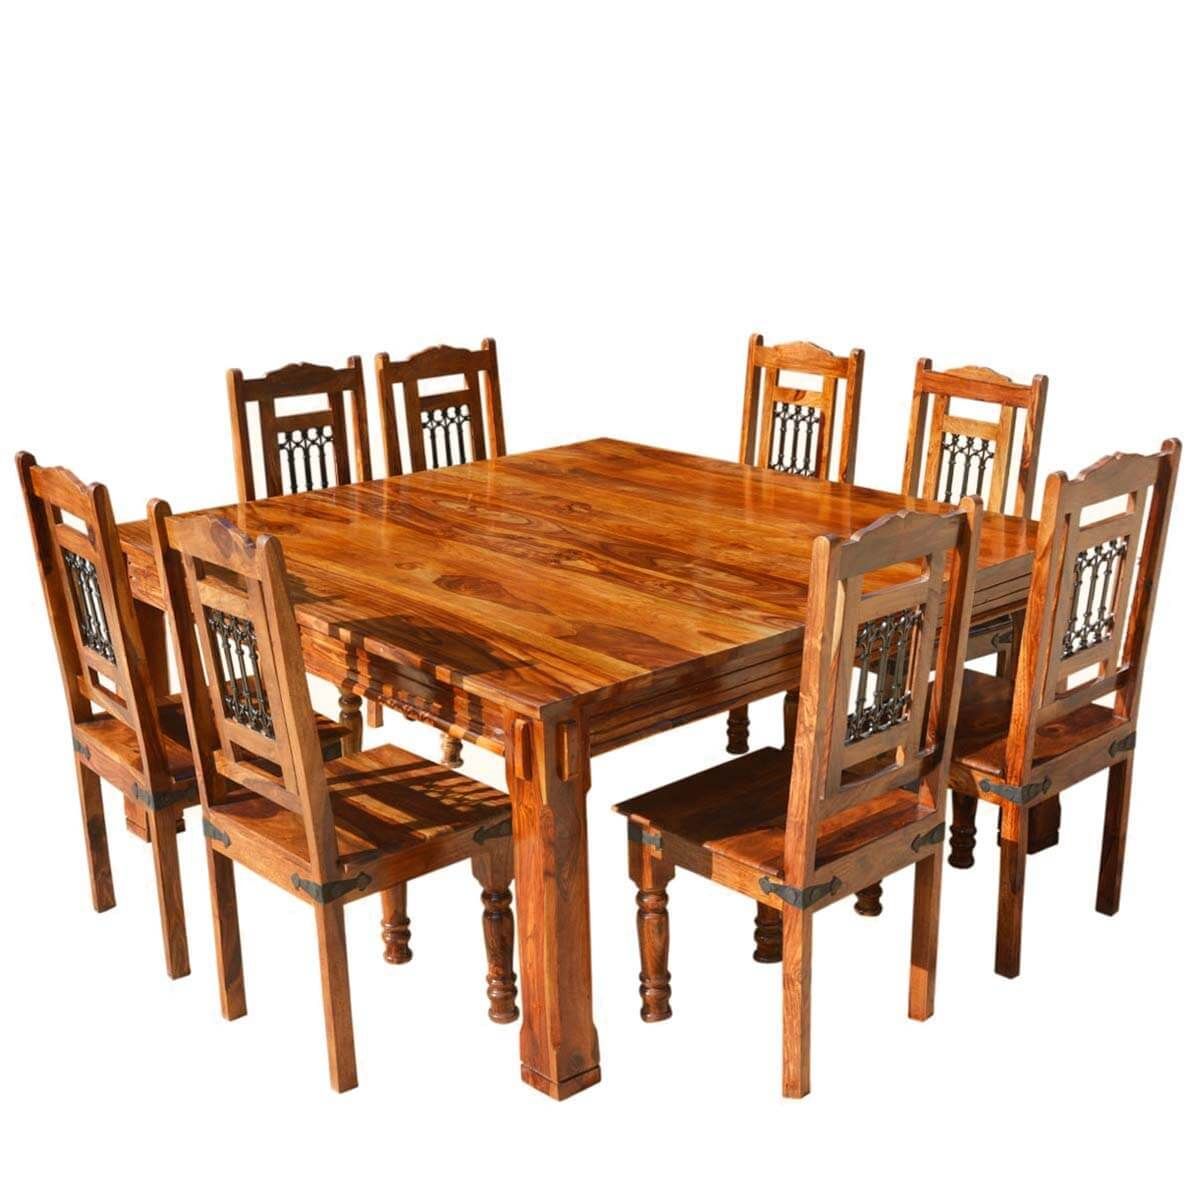 Solid Wood Rustic Square Dining Table Chairs Set Transitional Style